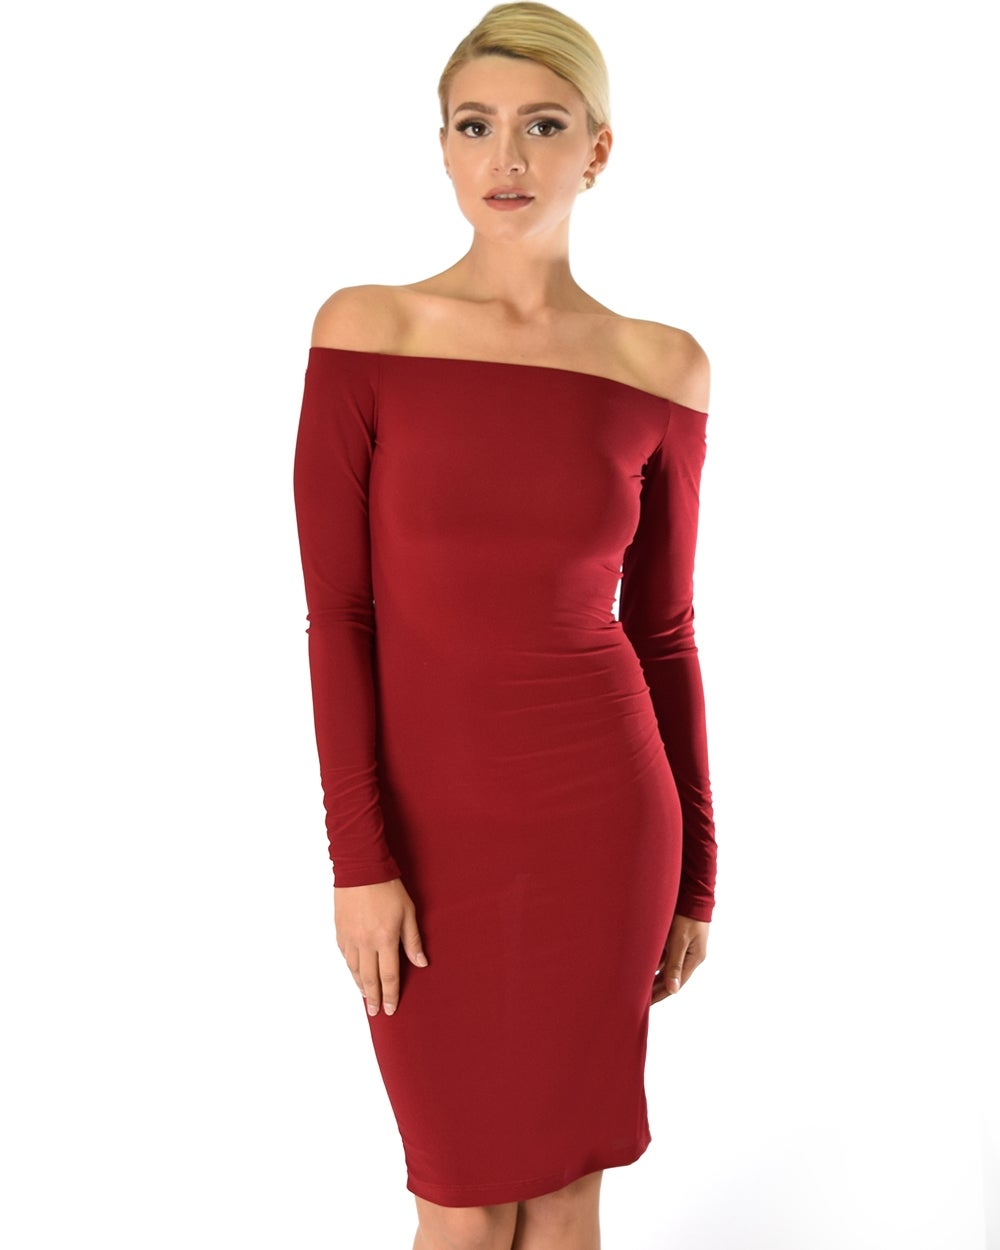 Image of Burgundy Long Sleeve Bodycon Dress